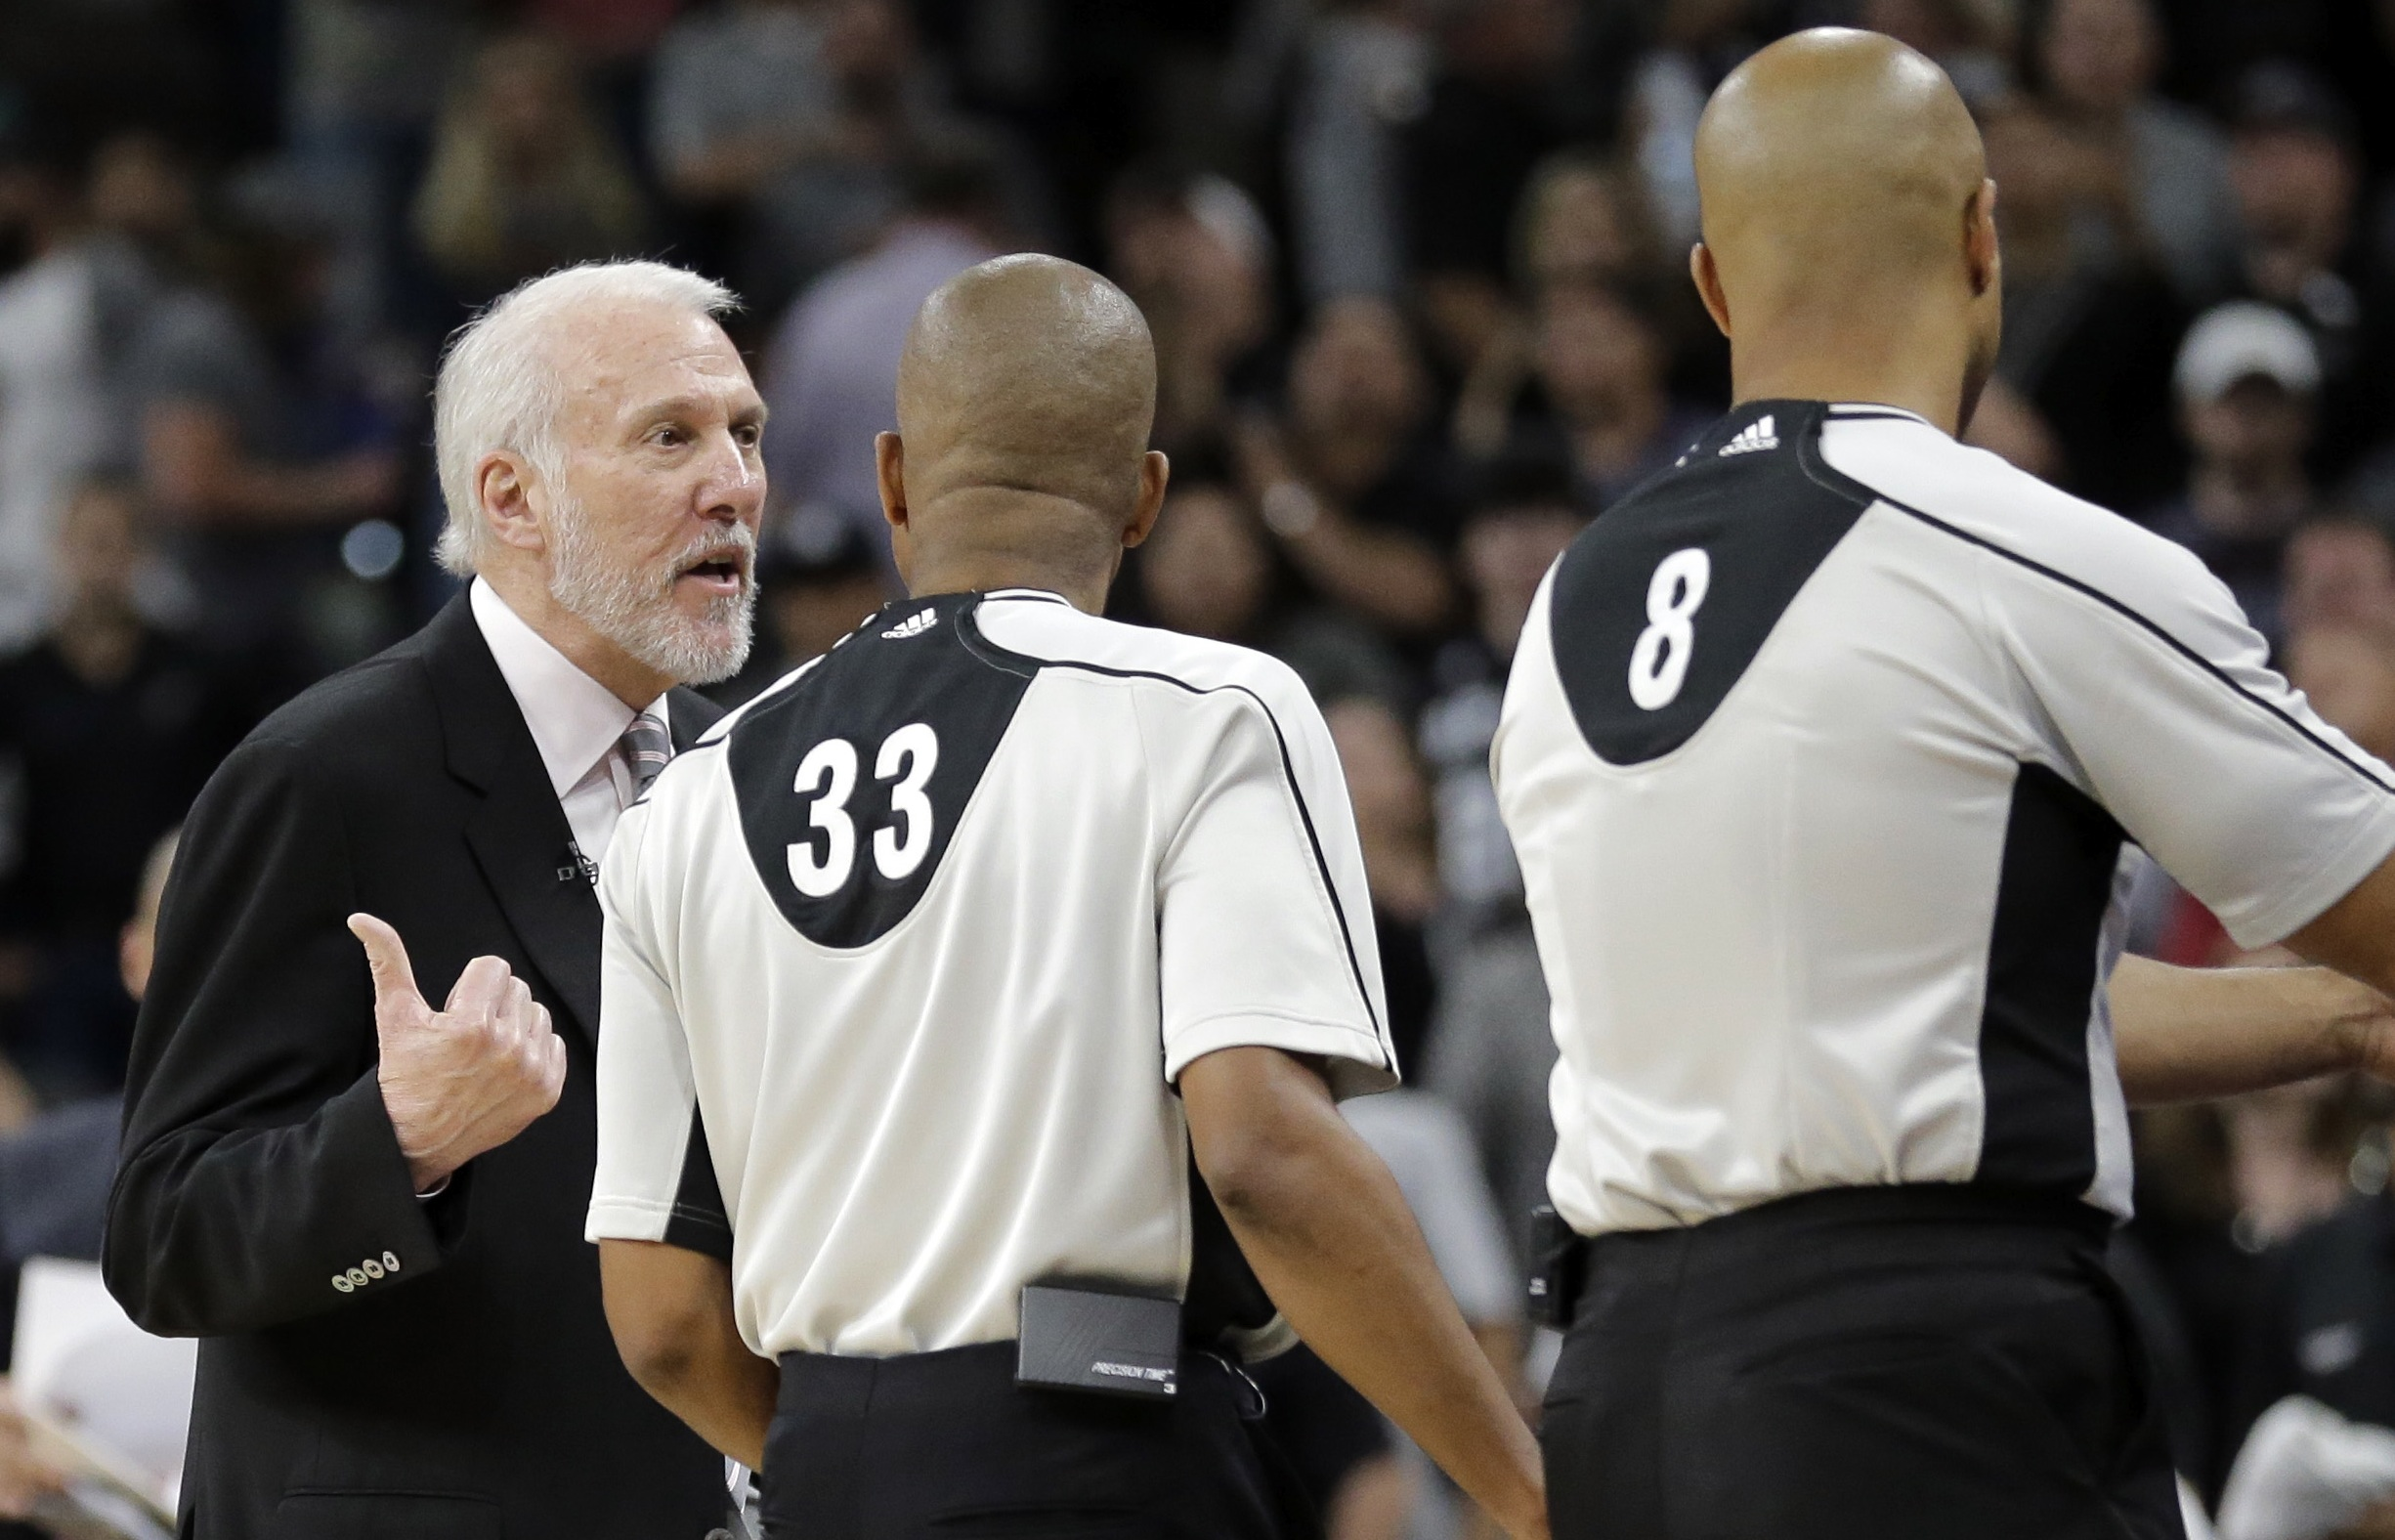 SNYDER Late game reports only undercut NBA officials difficult